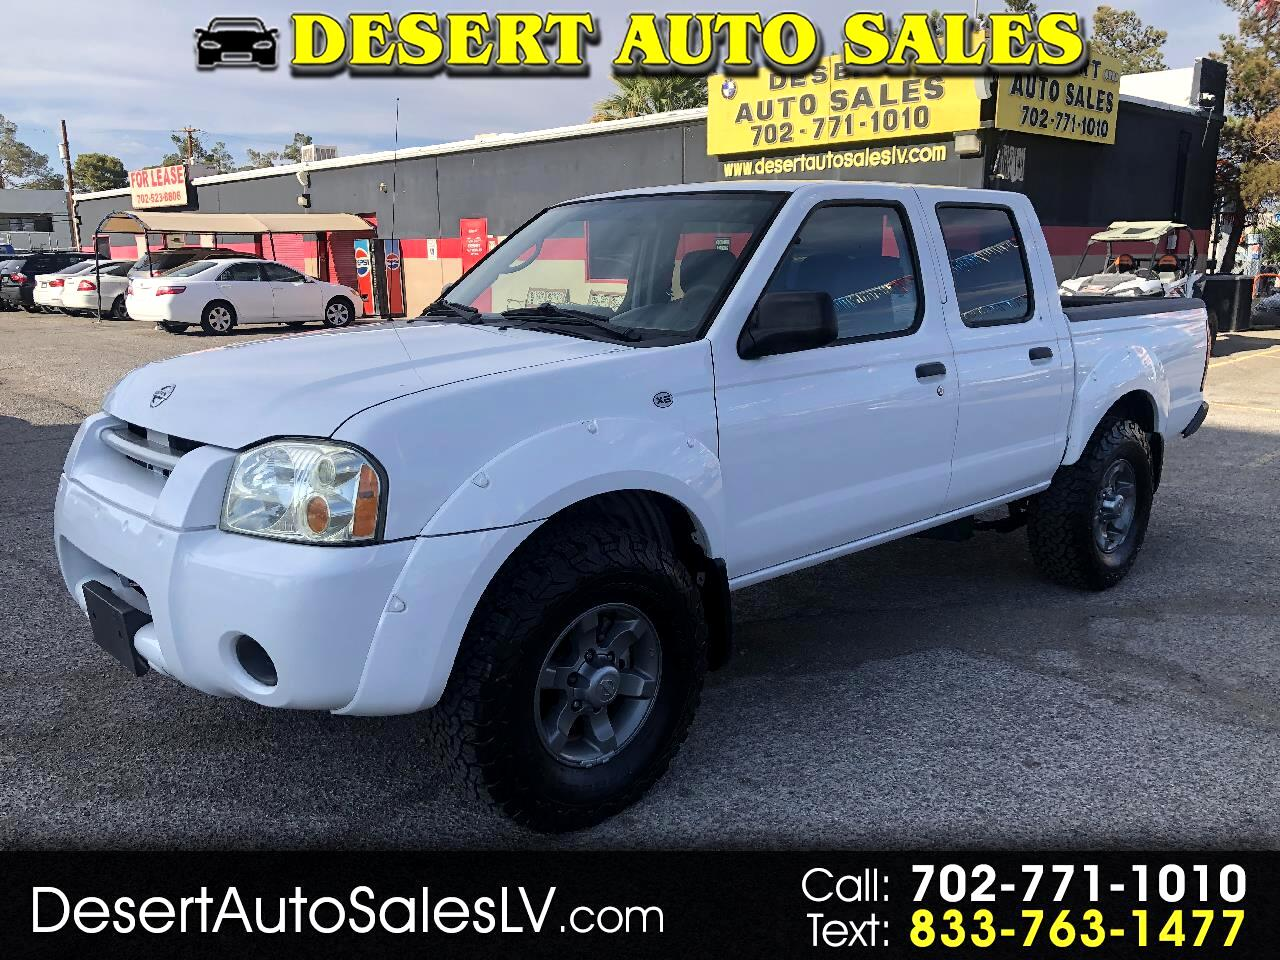 Nissan Frontier 2WD XE Crew Cab V6 Auto Std Bed 2004